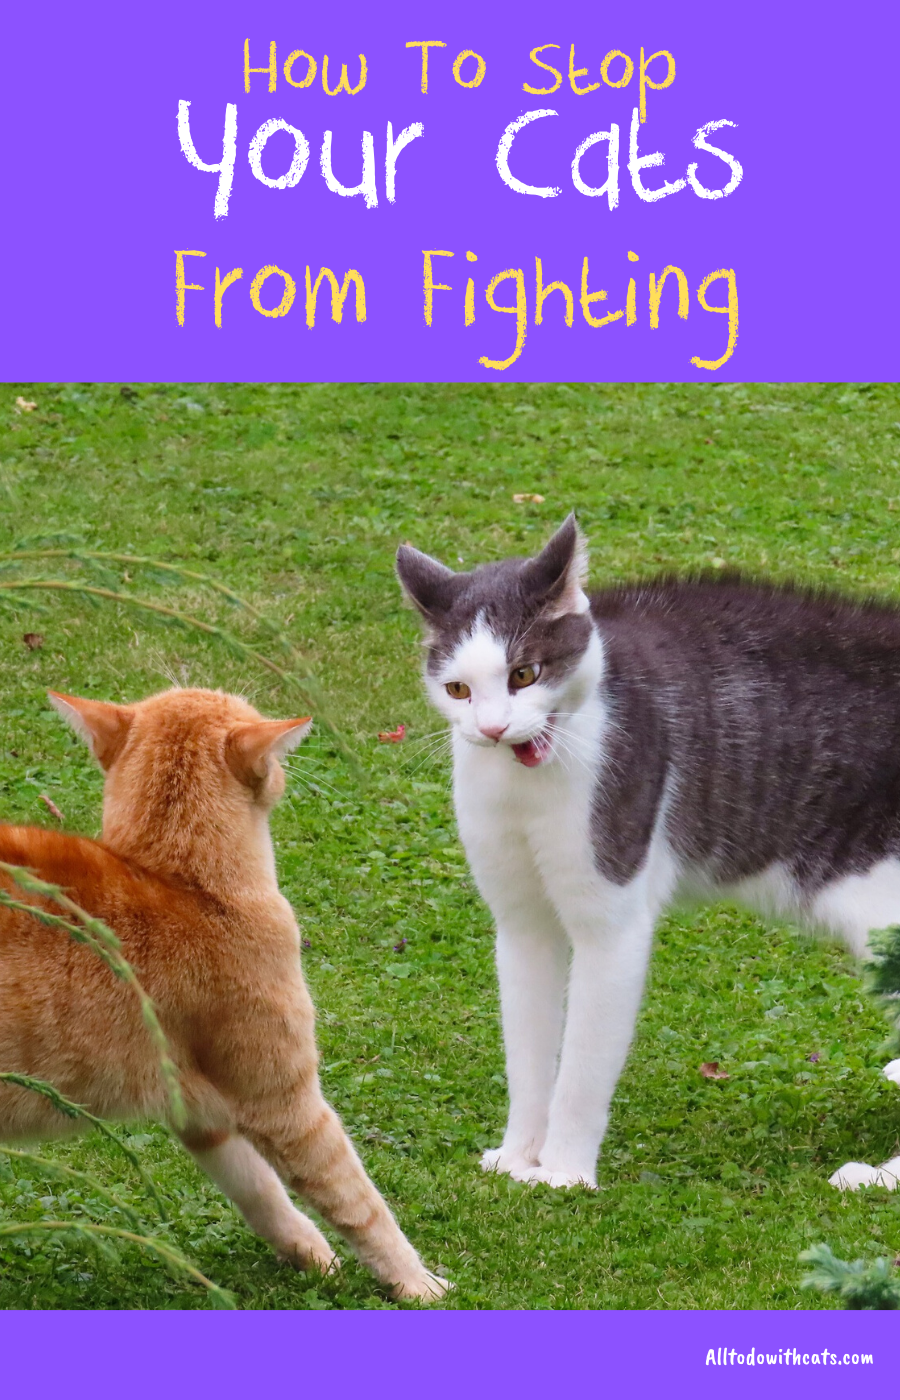 How To Stop Your Cats From Fighting Each Other? in 2020